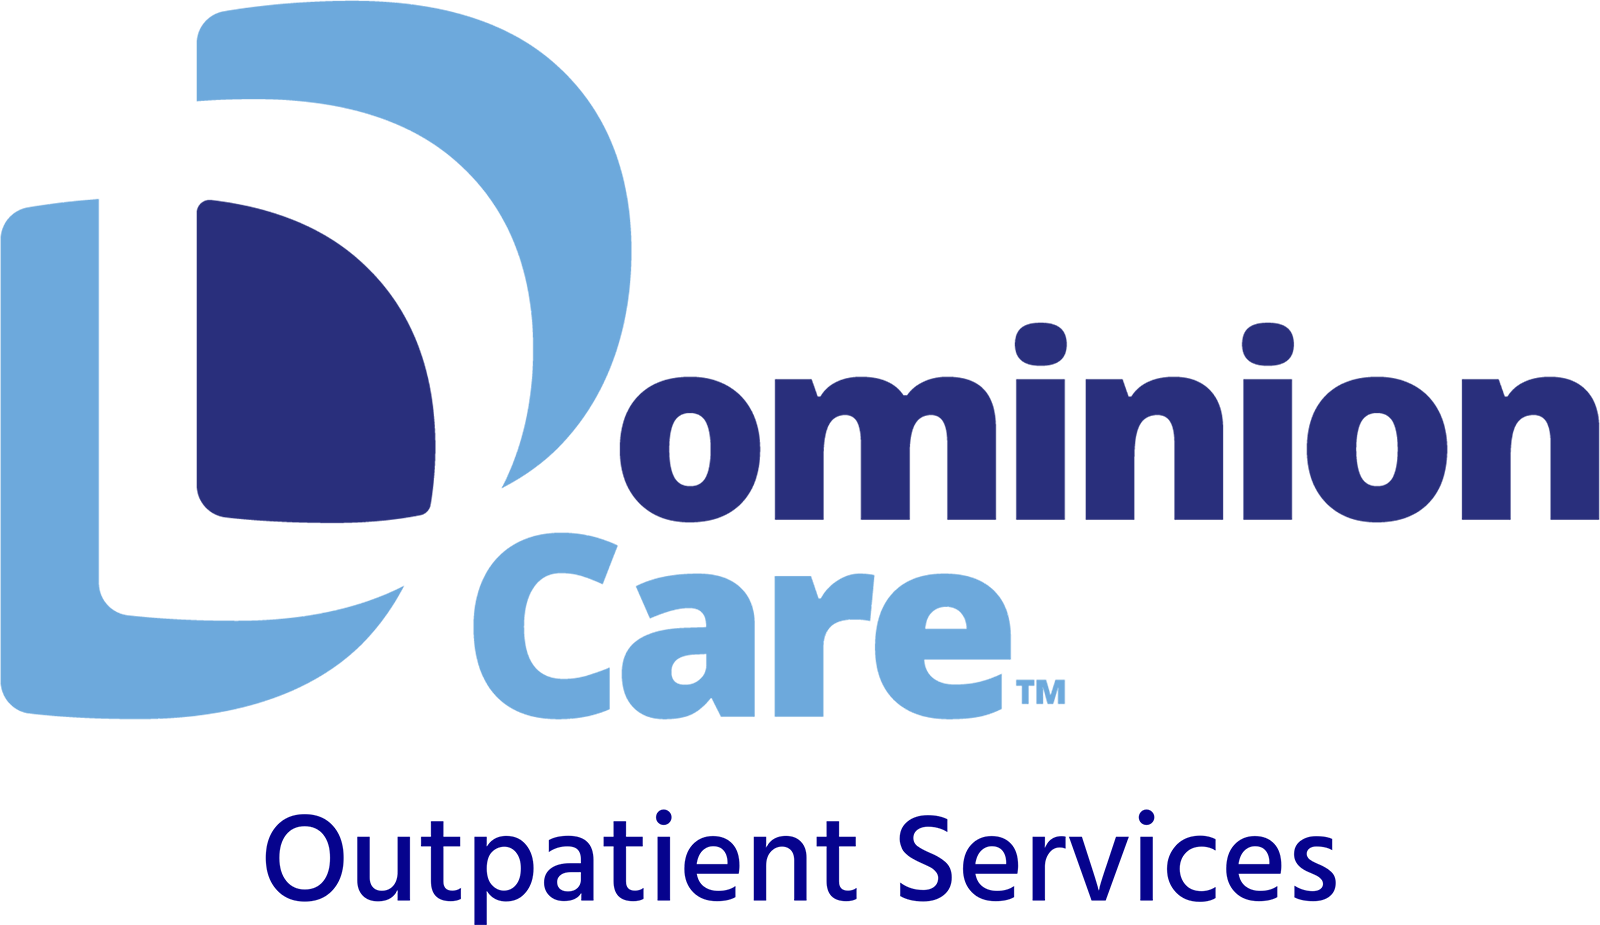 Dominion Outpatient / Dominion Care Services Intake Form